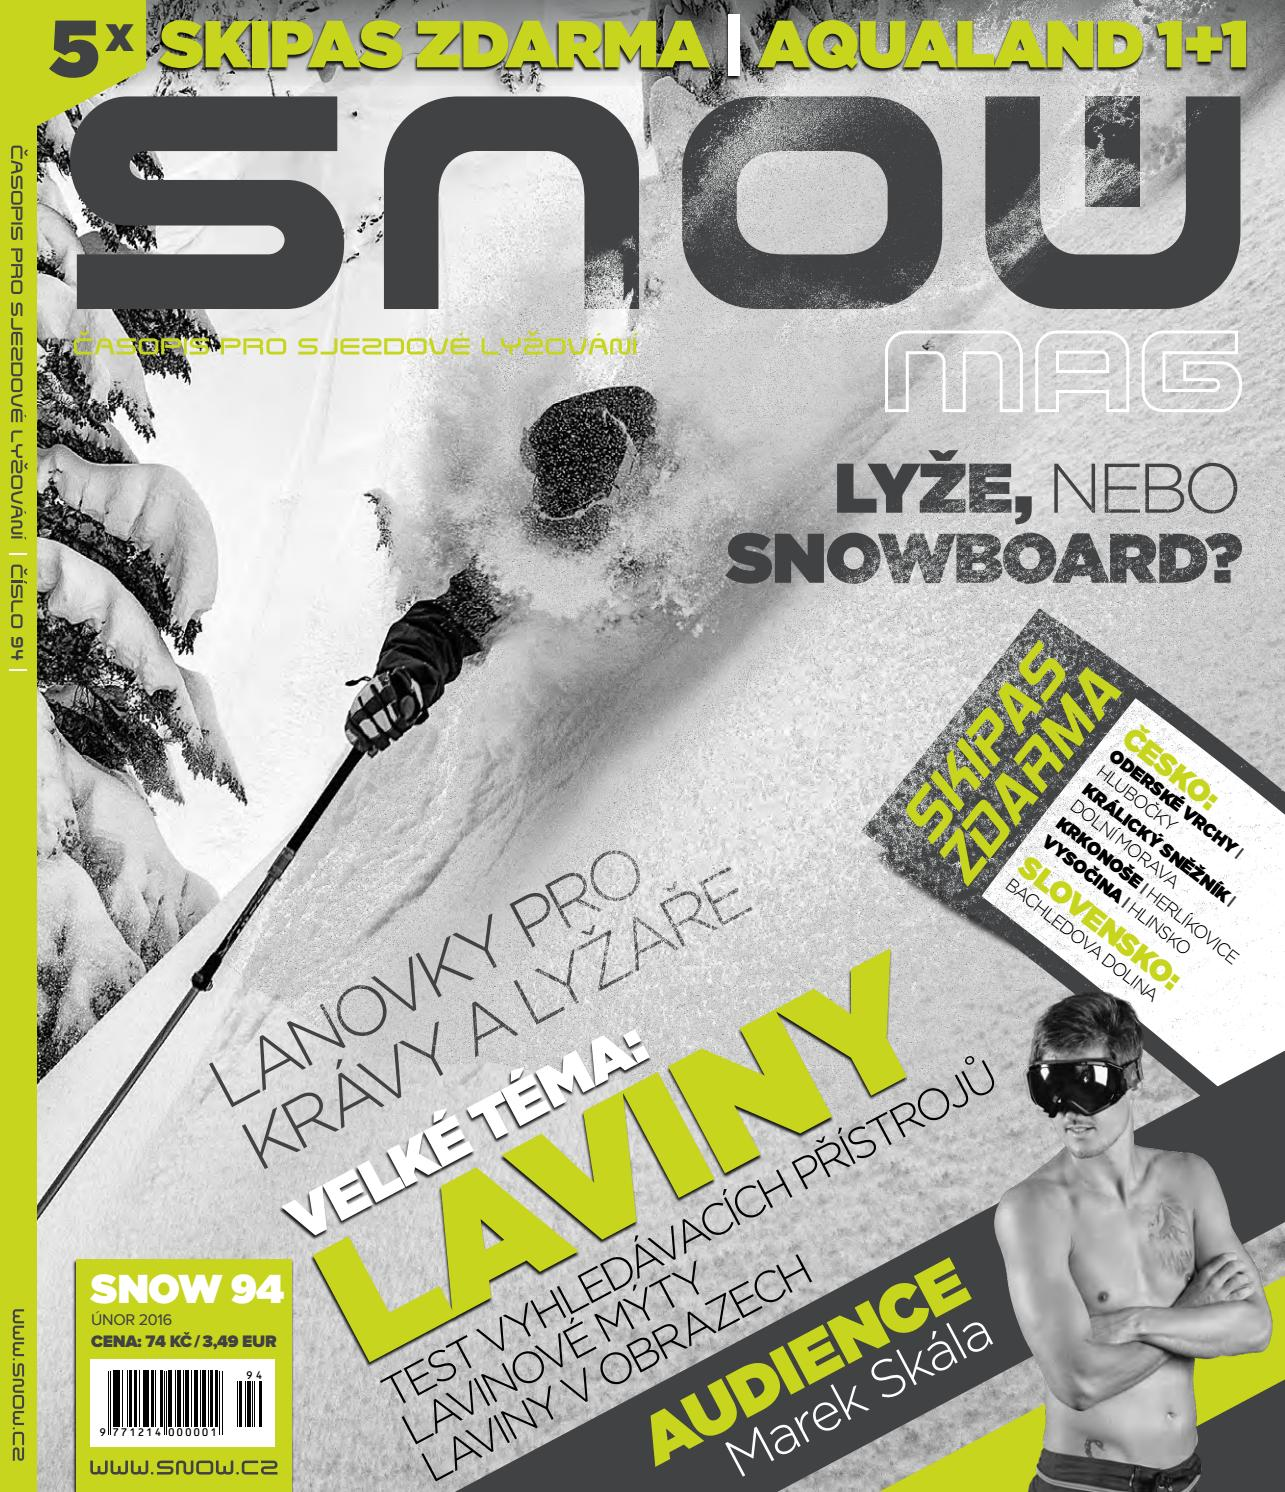 673182a48bb SNOW 94 - únor 2016 by SNOW CZ s.r.o. - issuu